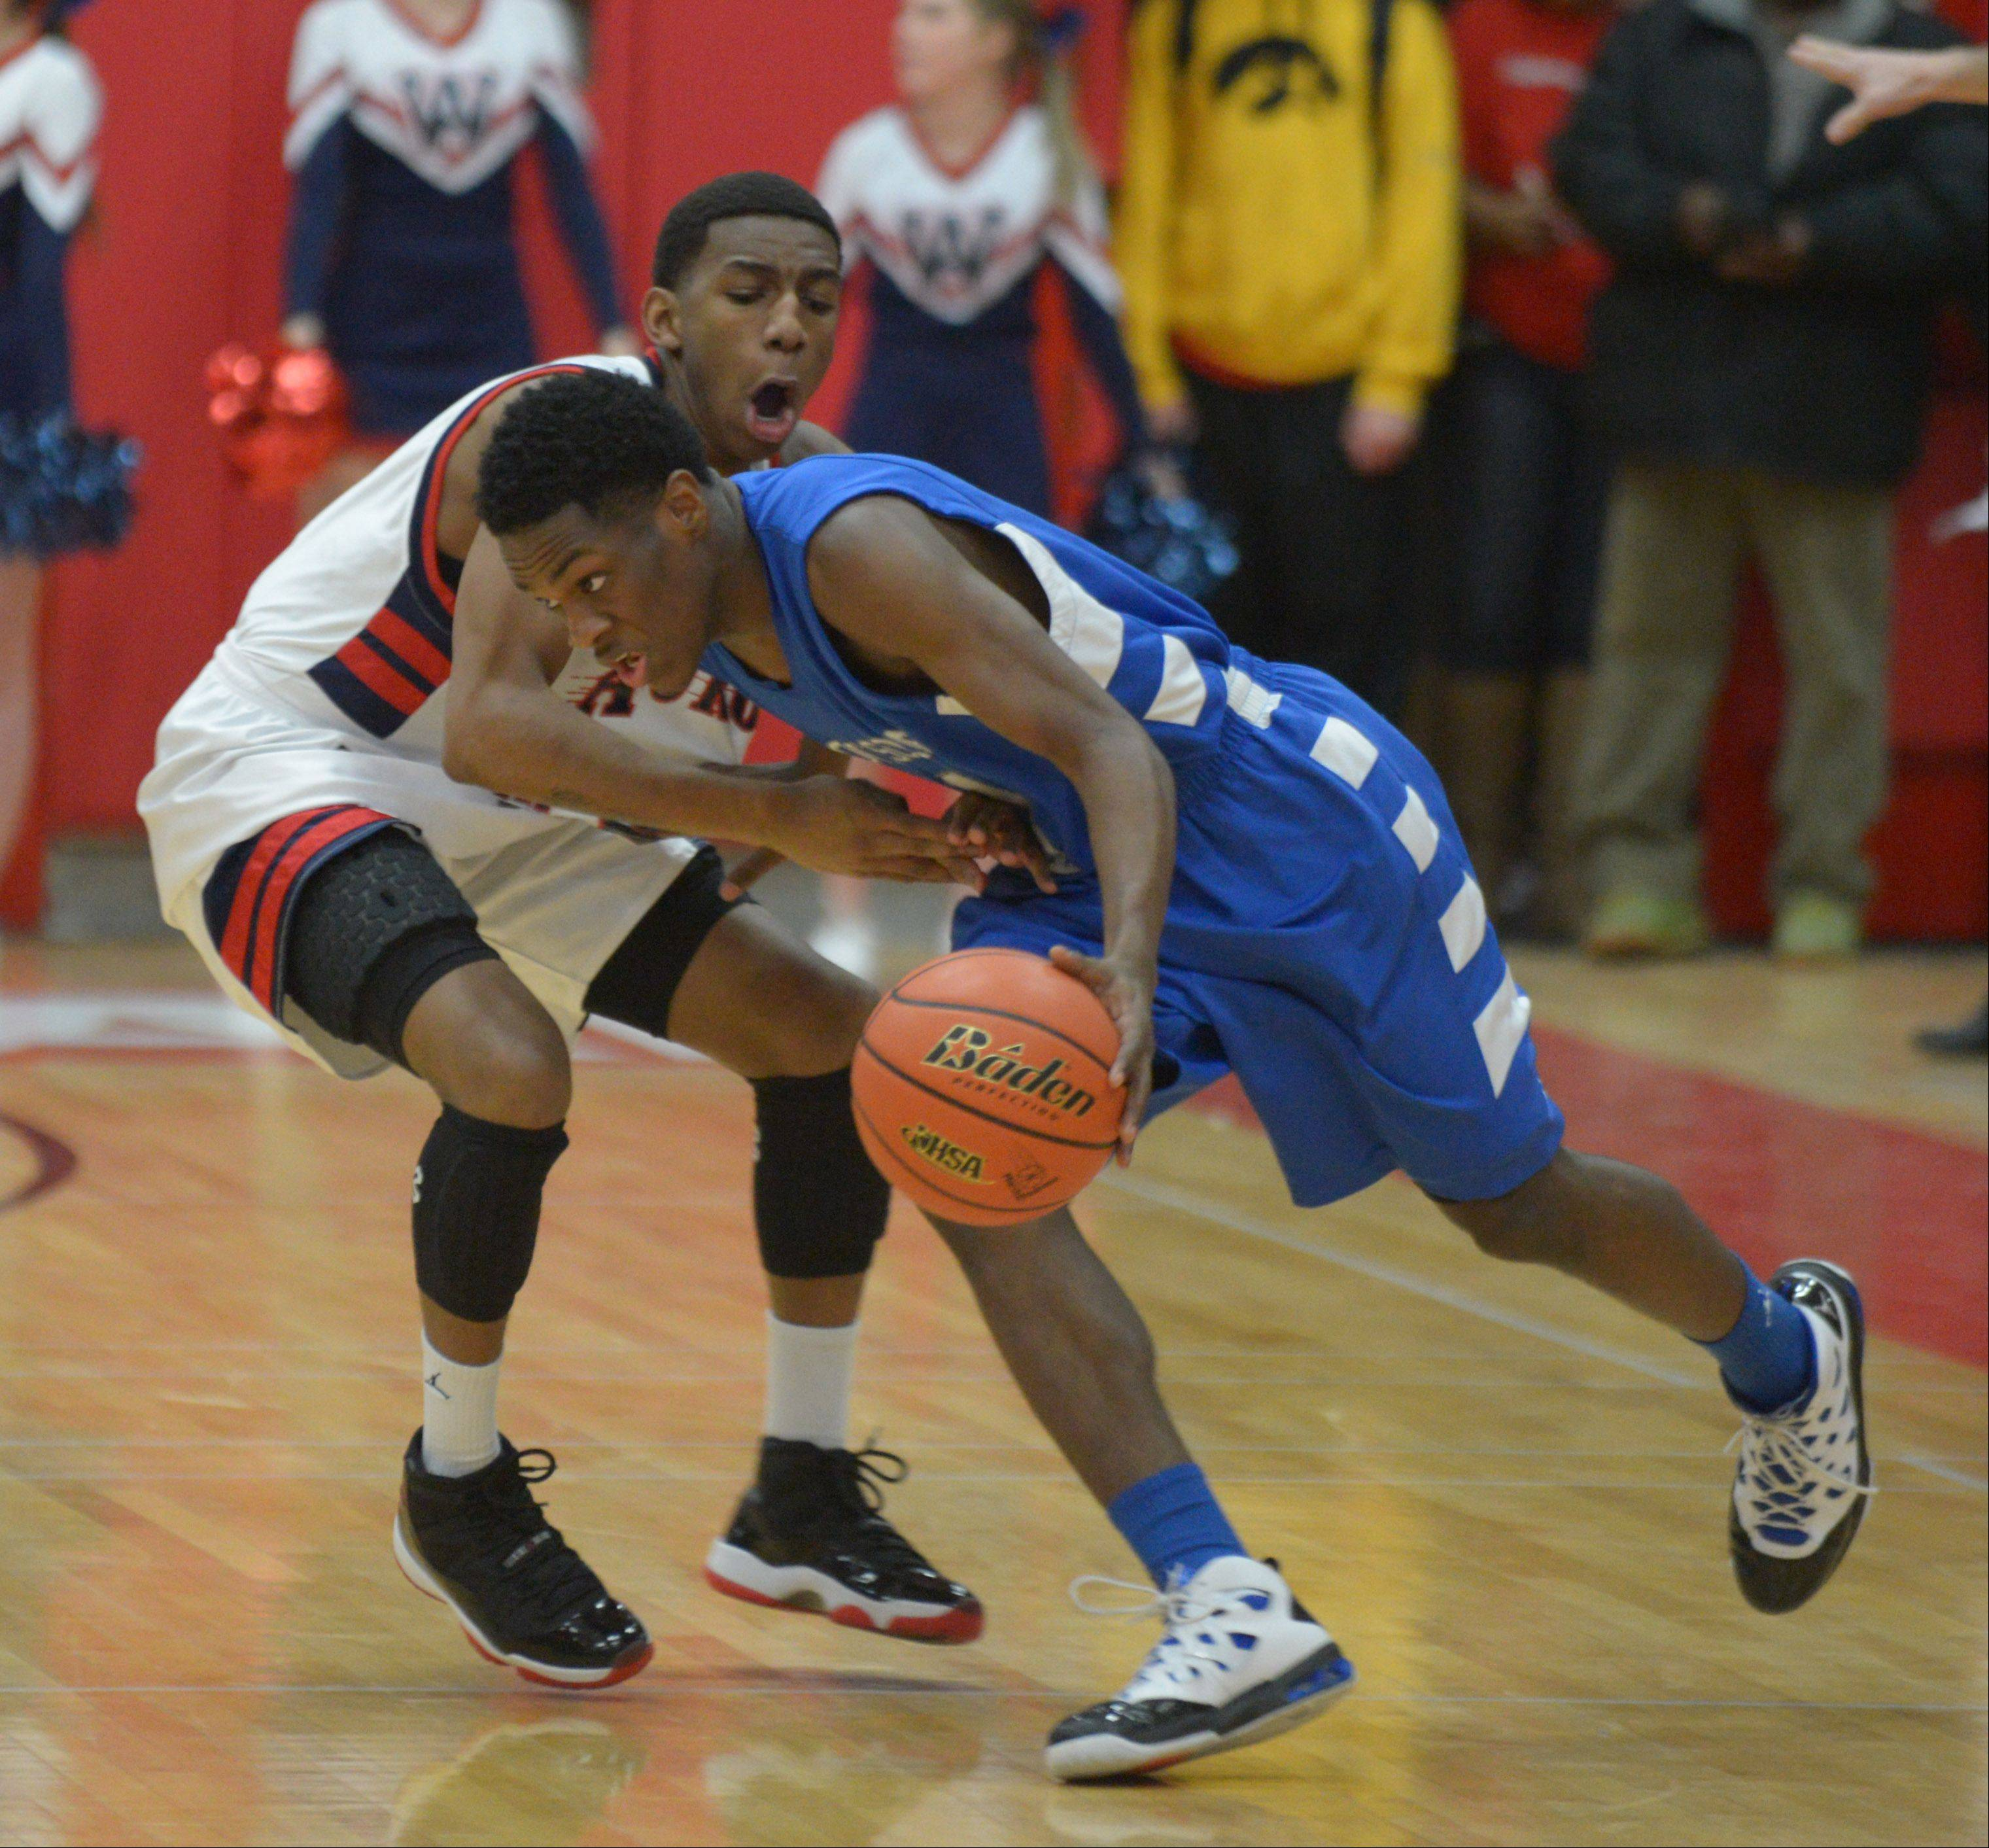 Jayquan Lee of West Aurora works against Paris Lee of Proviso East.